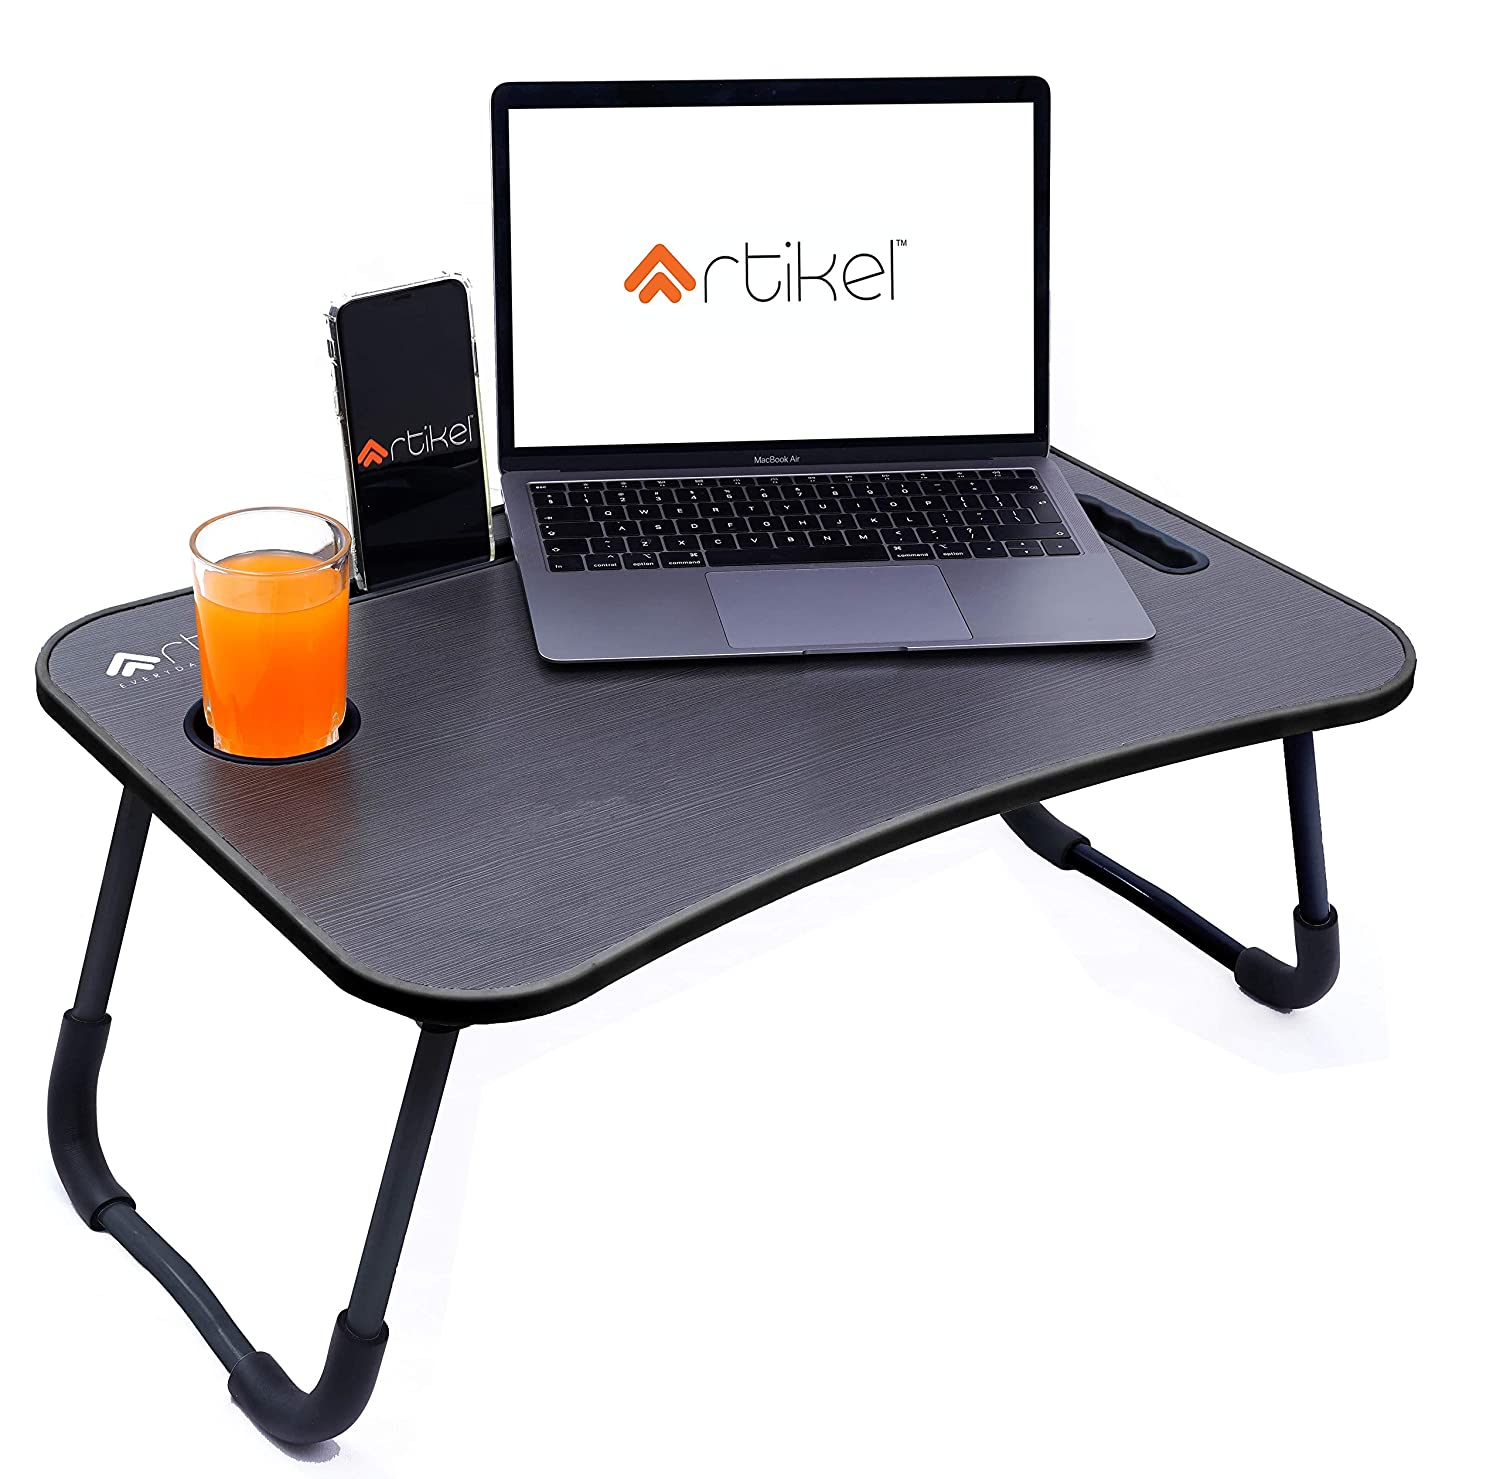 Artikel Multi-Purpose study laptop table